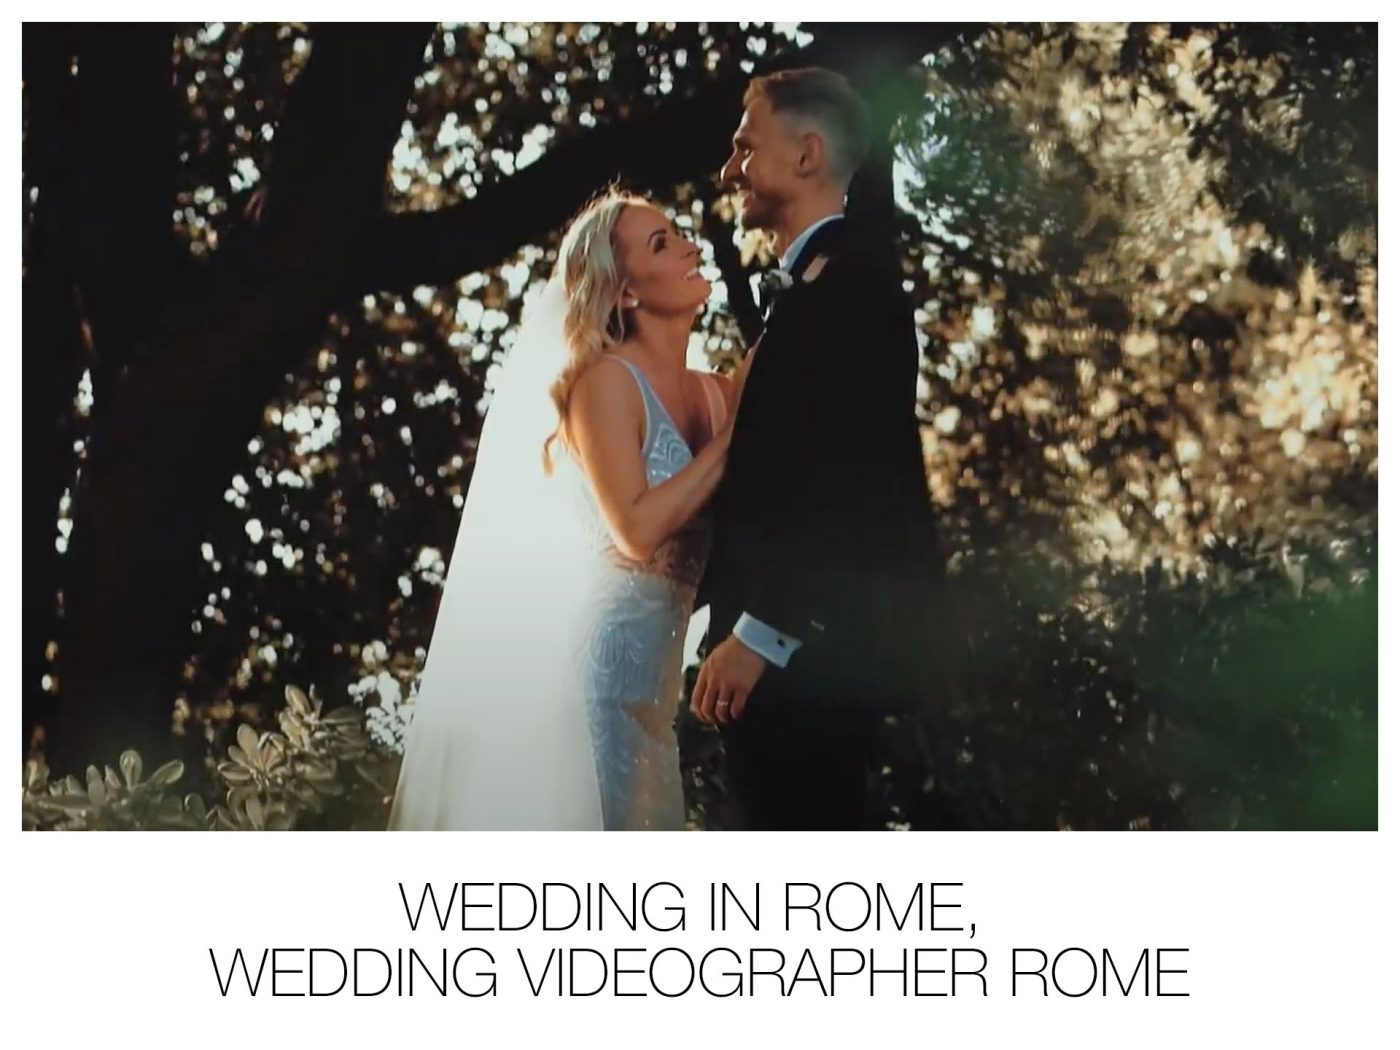 Wedding in Rome, Wedding Videographer Rome.